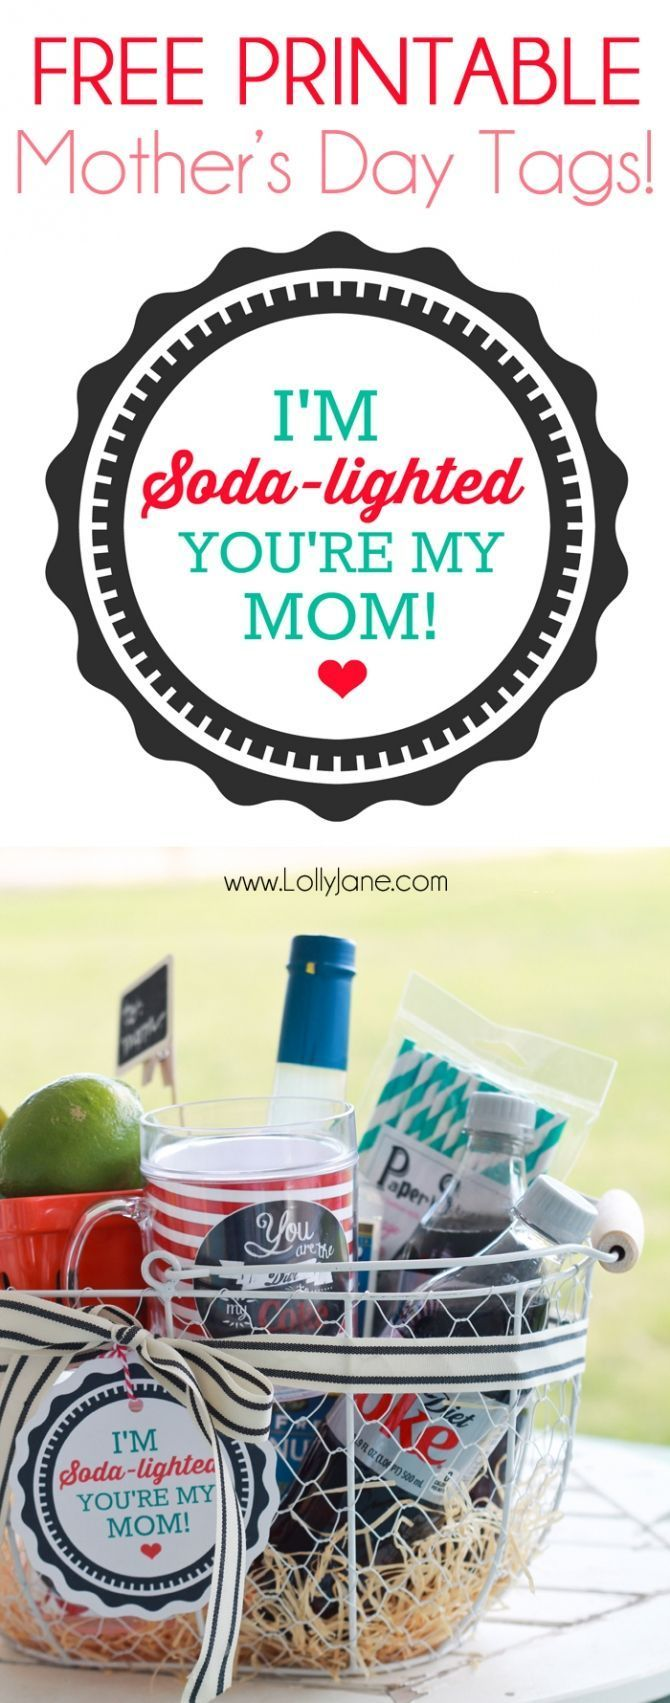 """Mothers Day """"Soda-lighted"""" Basket With Free Printable Tag"""